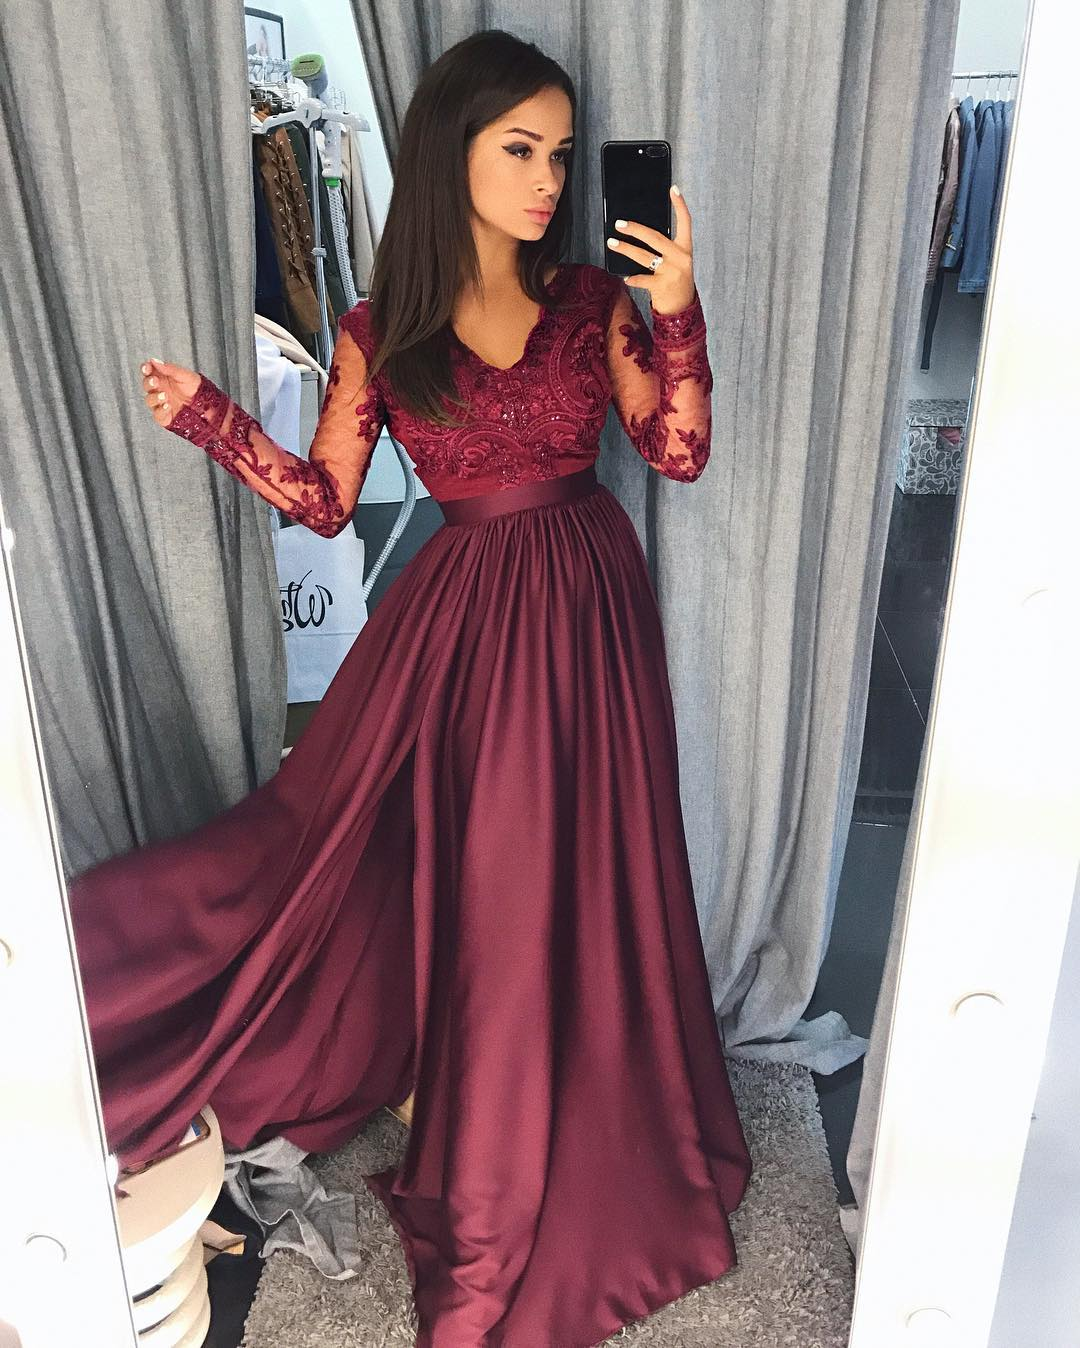 914e74978c1 V-Neck A-Line Prom Dresses Lace Graduation Dress Cheap Evening Dress  Chiffon Fashion Dress Slit Party Gowns 2018 Hot Long Sexy Prom Gowns on  Storenvy